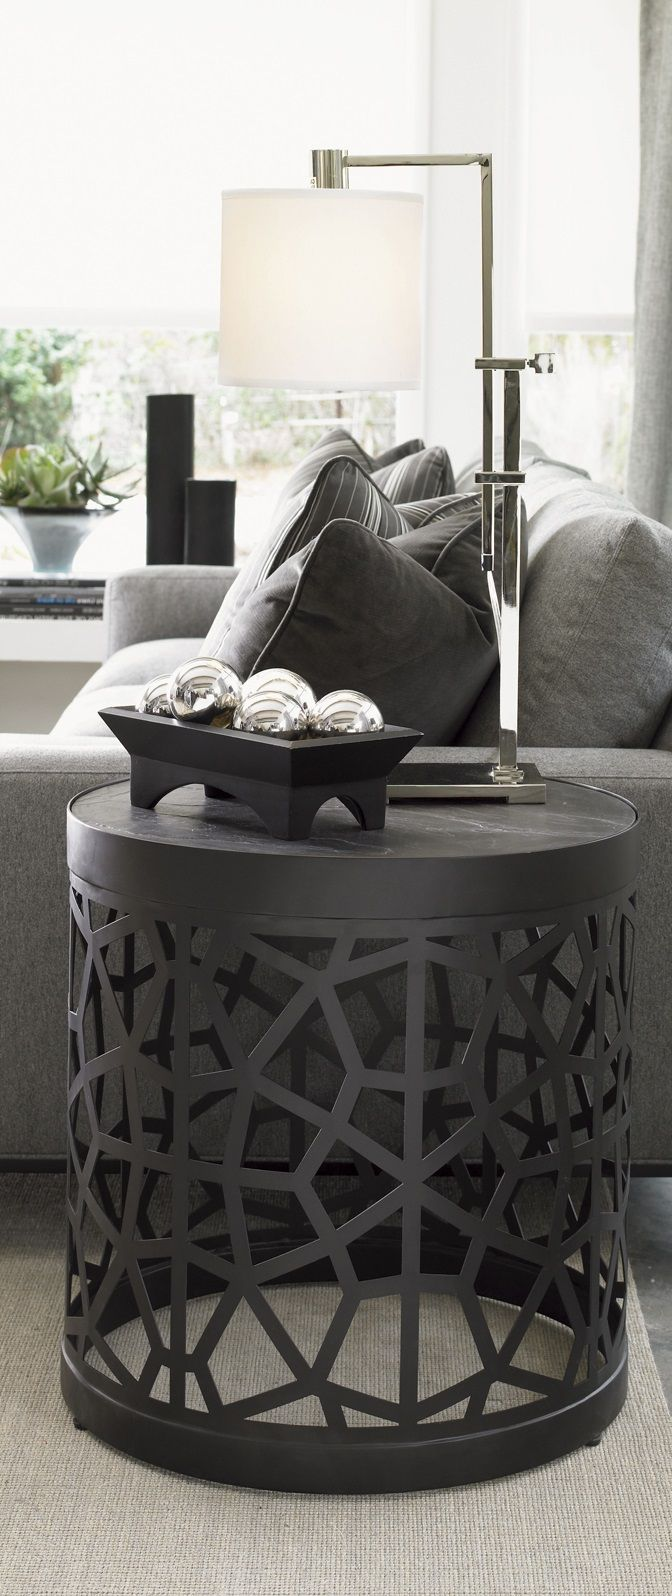 Side tables accent tables end tables interiordesign casegoodsideas · luxury dining roomluxury livingmodern